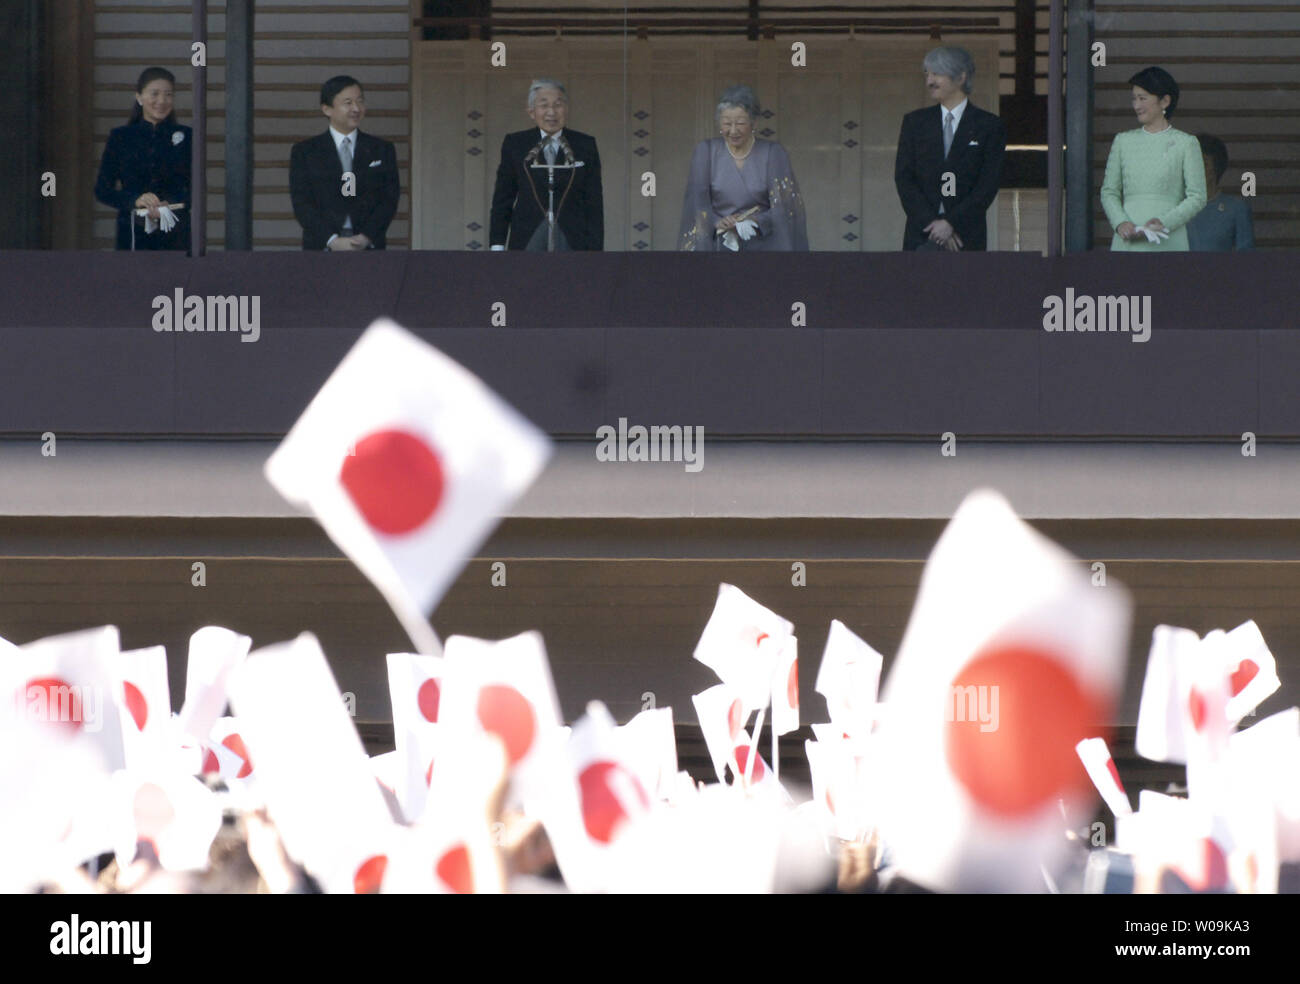 Japan's Emperor Akihito(L3) waves to well-wishers with Empress Michiko(R3), Crown prince Naruhito(L2), Crown princess Masako(L), Prince Akishino (R2) and his wife Princess Kiko(R), during a new year greeting at the East Plaza, Imperial Palace in Tokyo, Japan, on January 2, 2010.     UPI/Keizo Mori - Stock Image